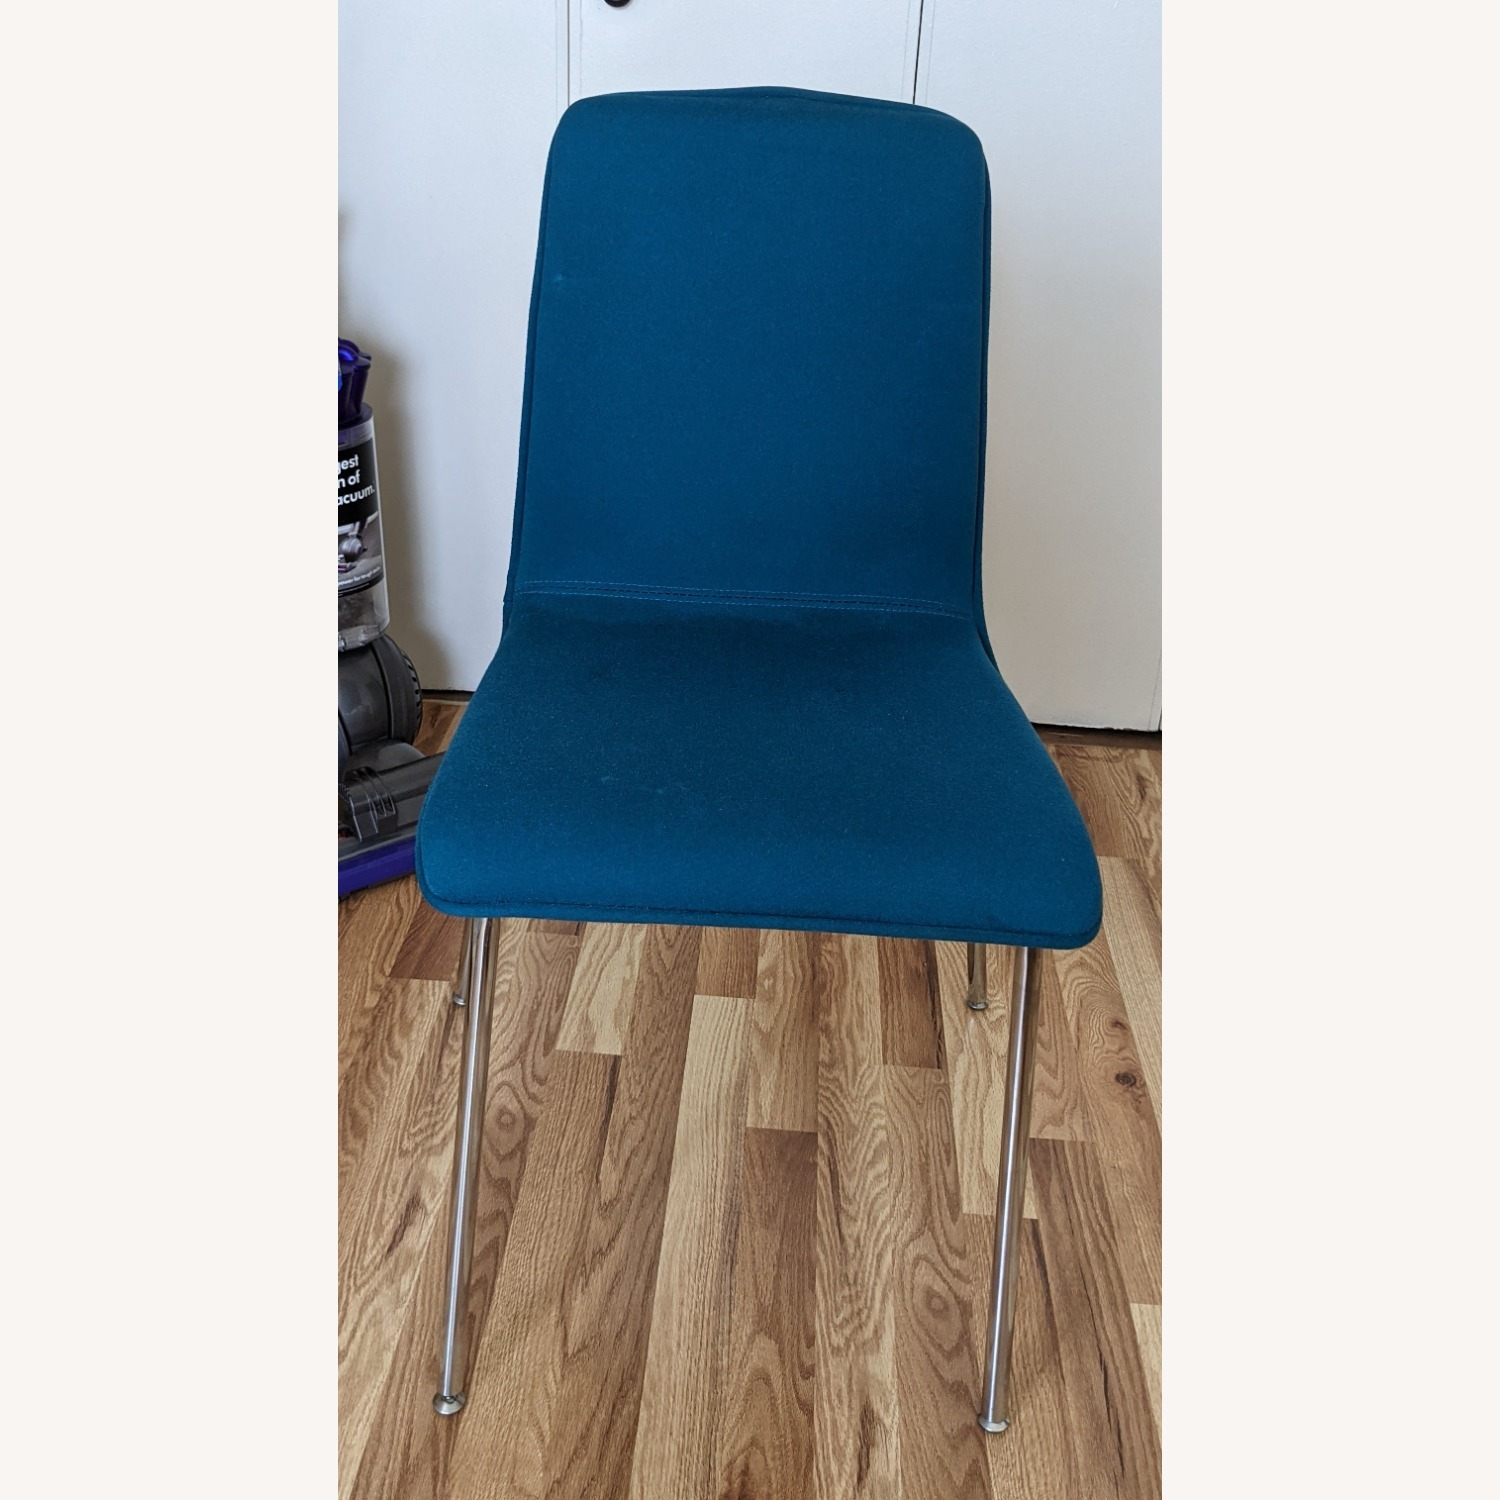 Target Blue Accent Chair - image-3